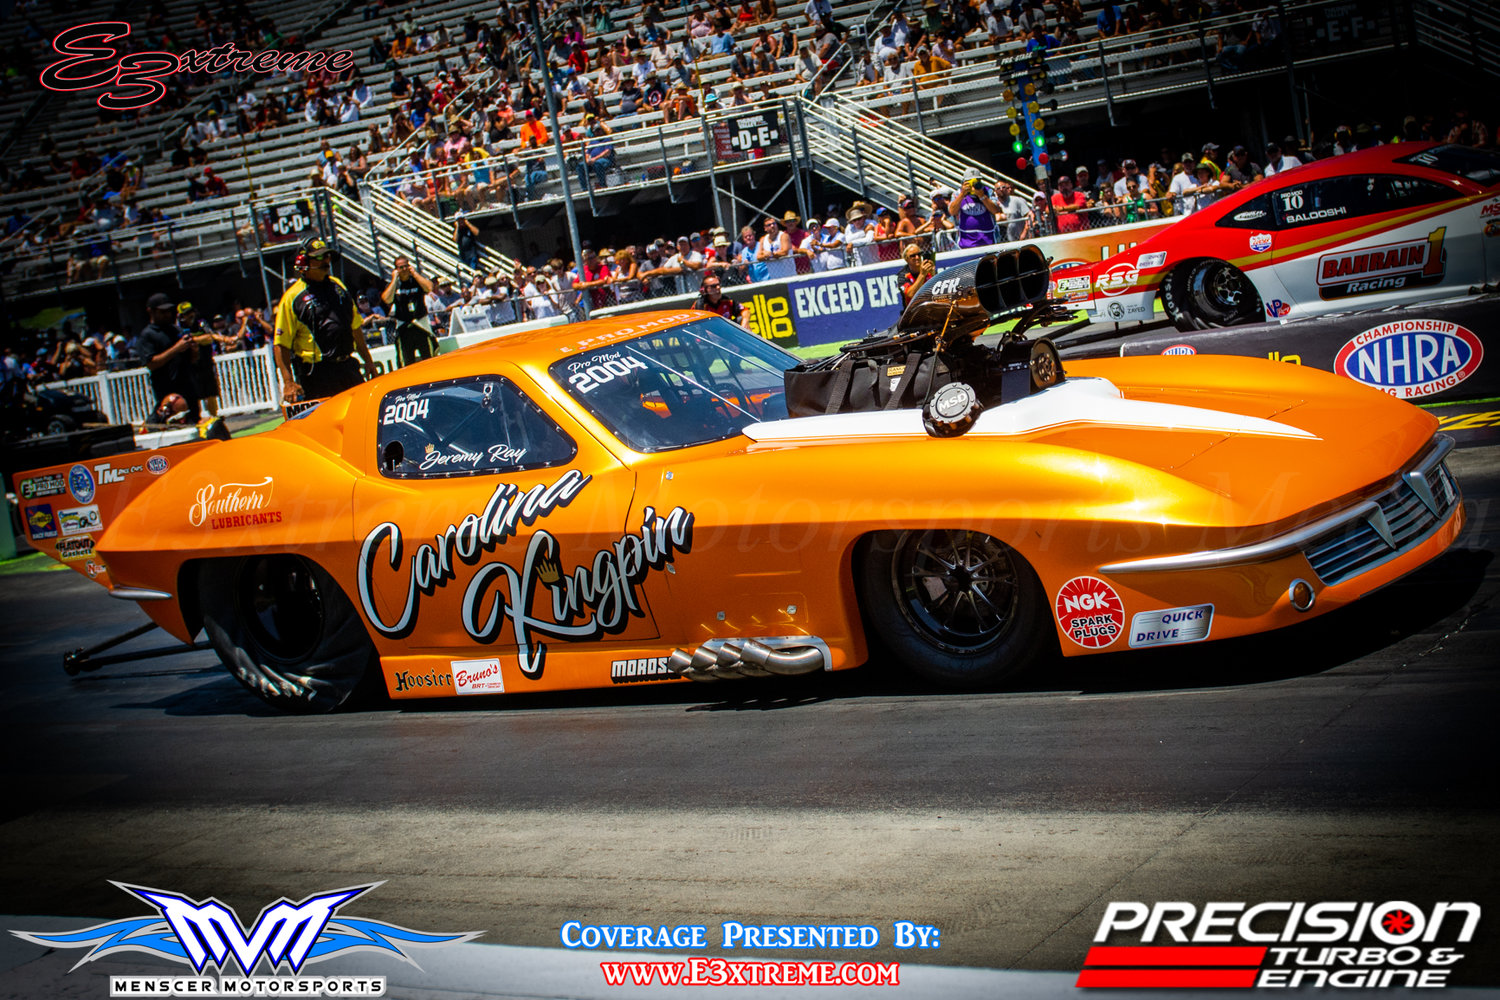 Jeremy Ray crushing it in NHRA